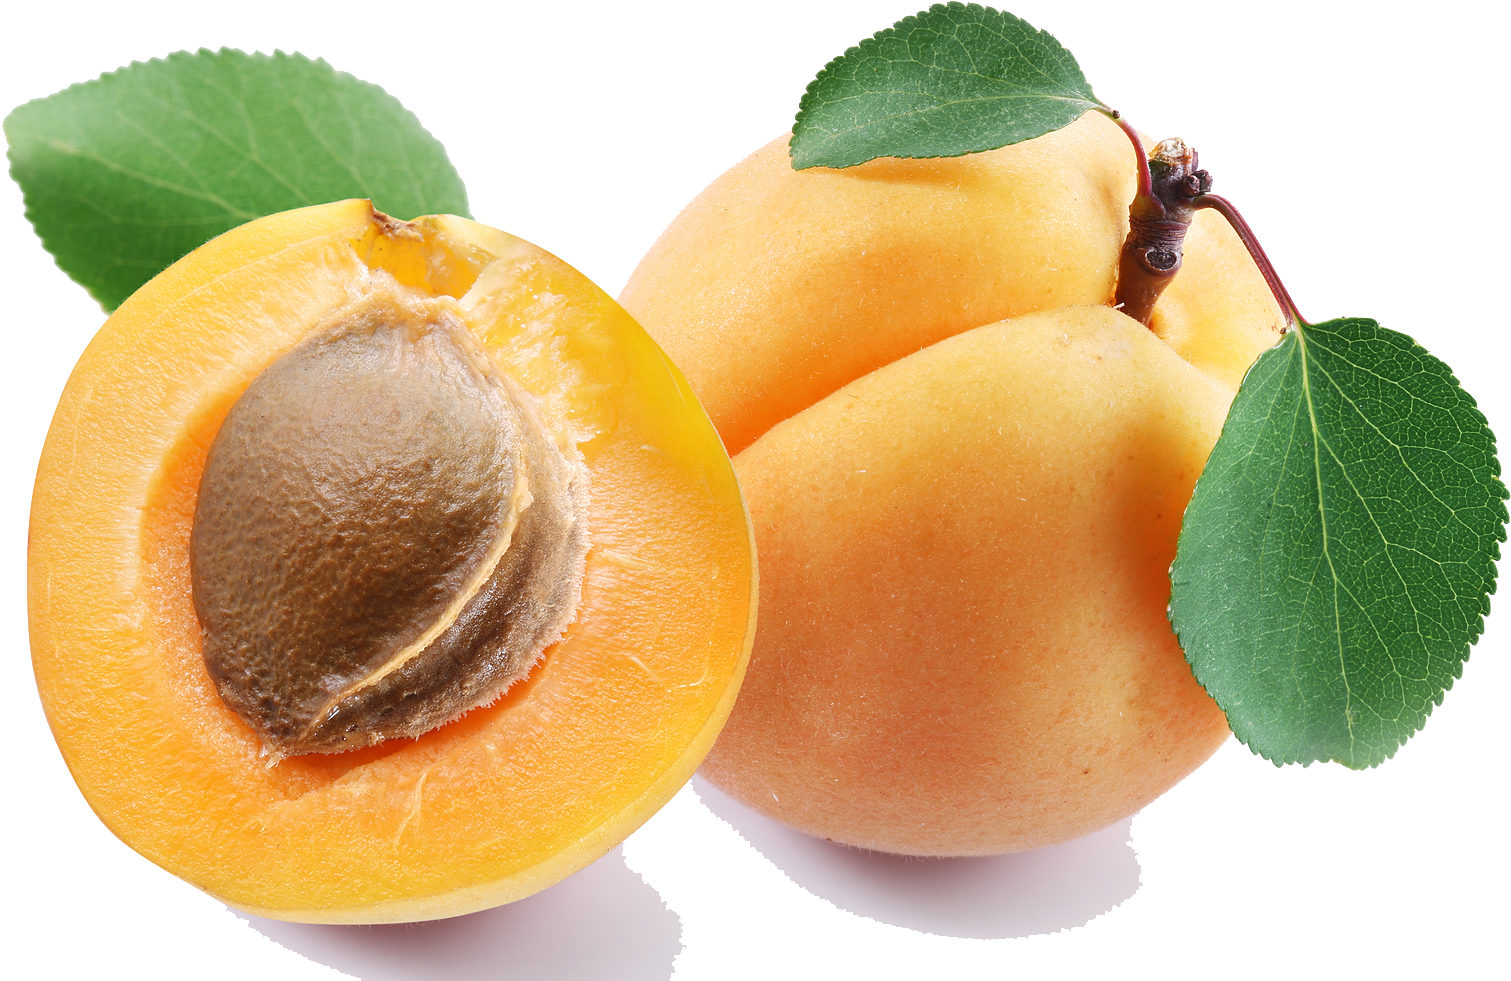 Top 18 Apricot Png Transparent - Apricot Png Clipart (1600x1032), Png Download